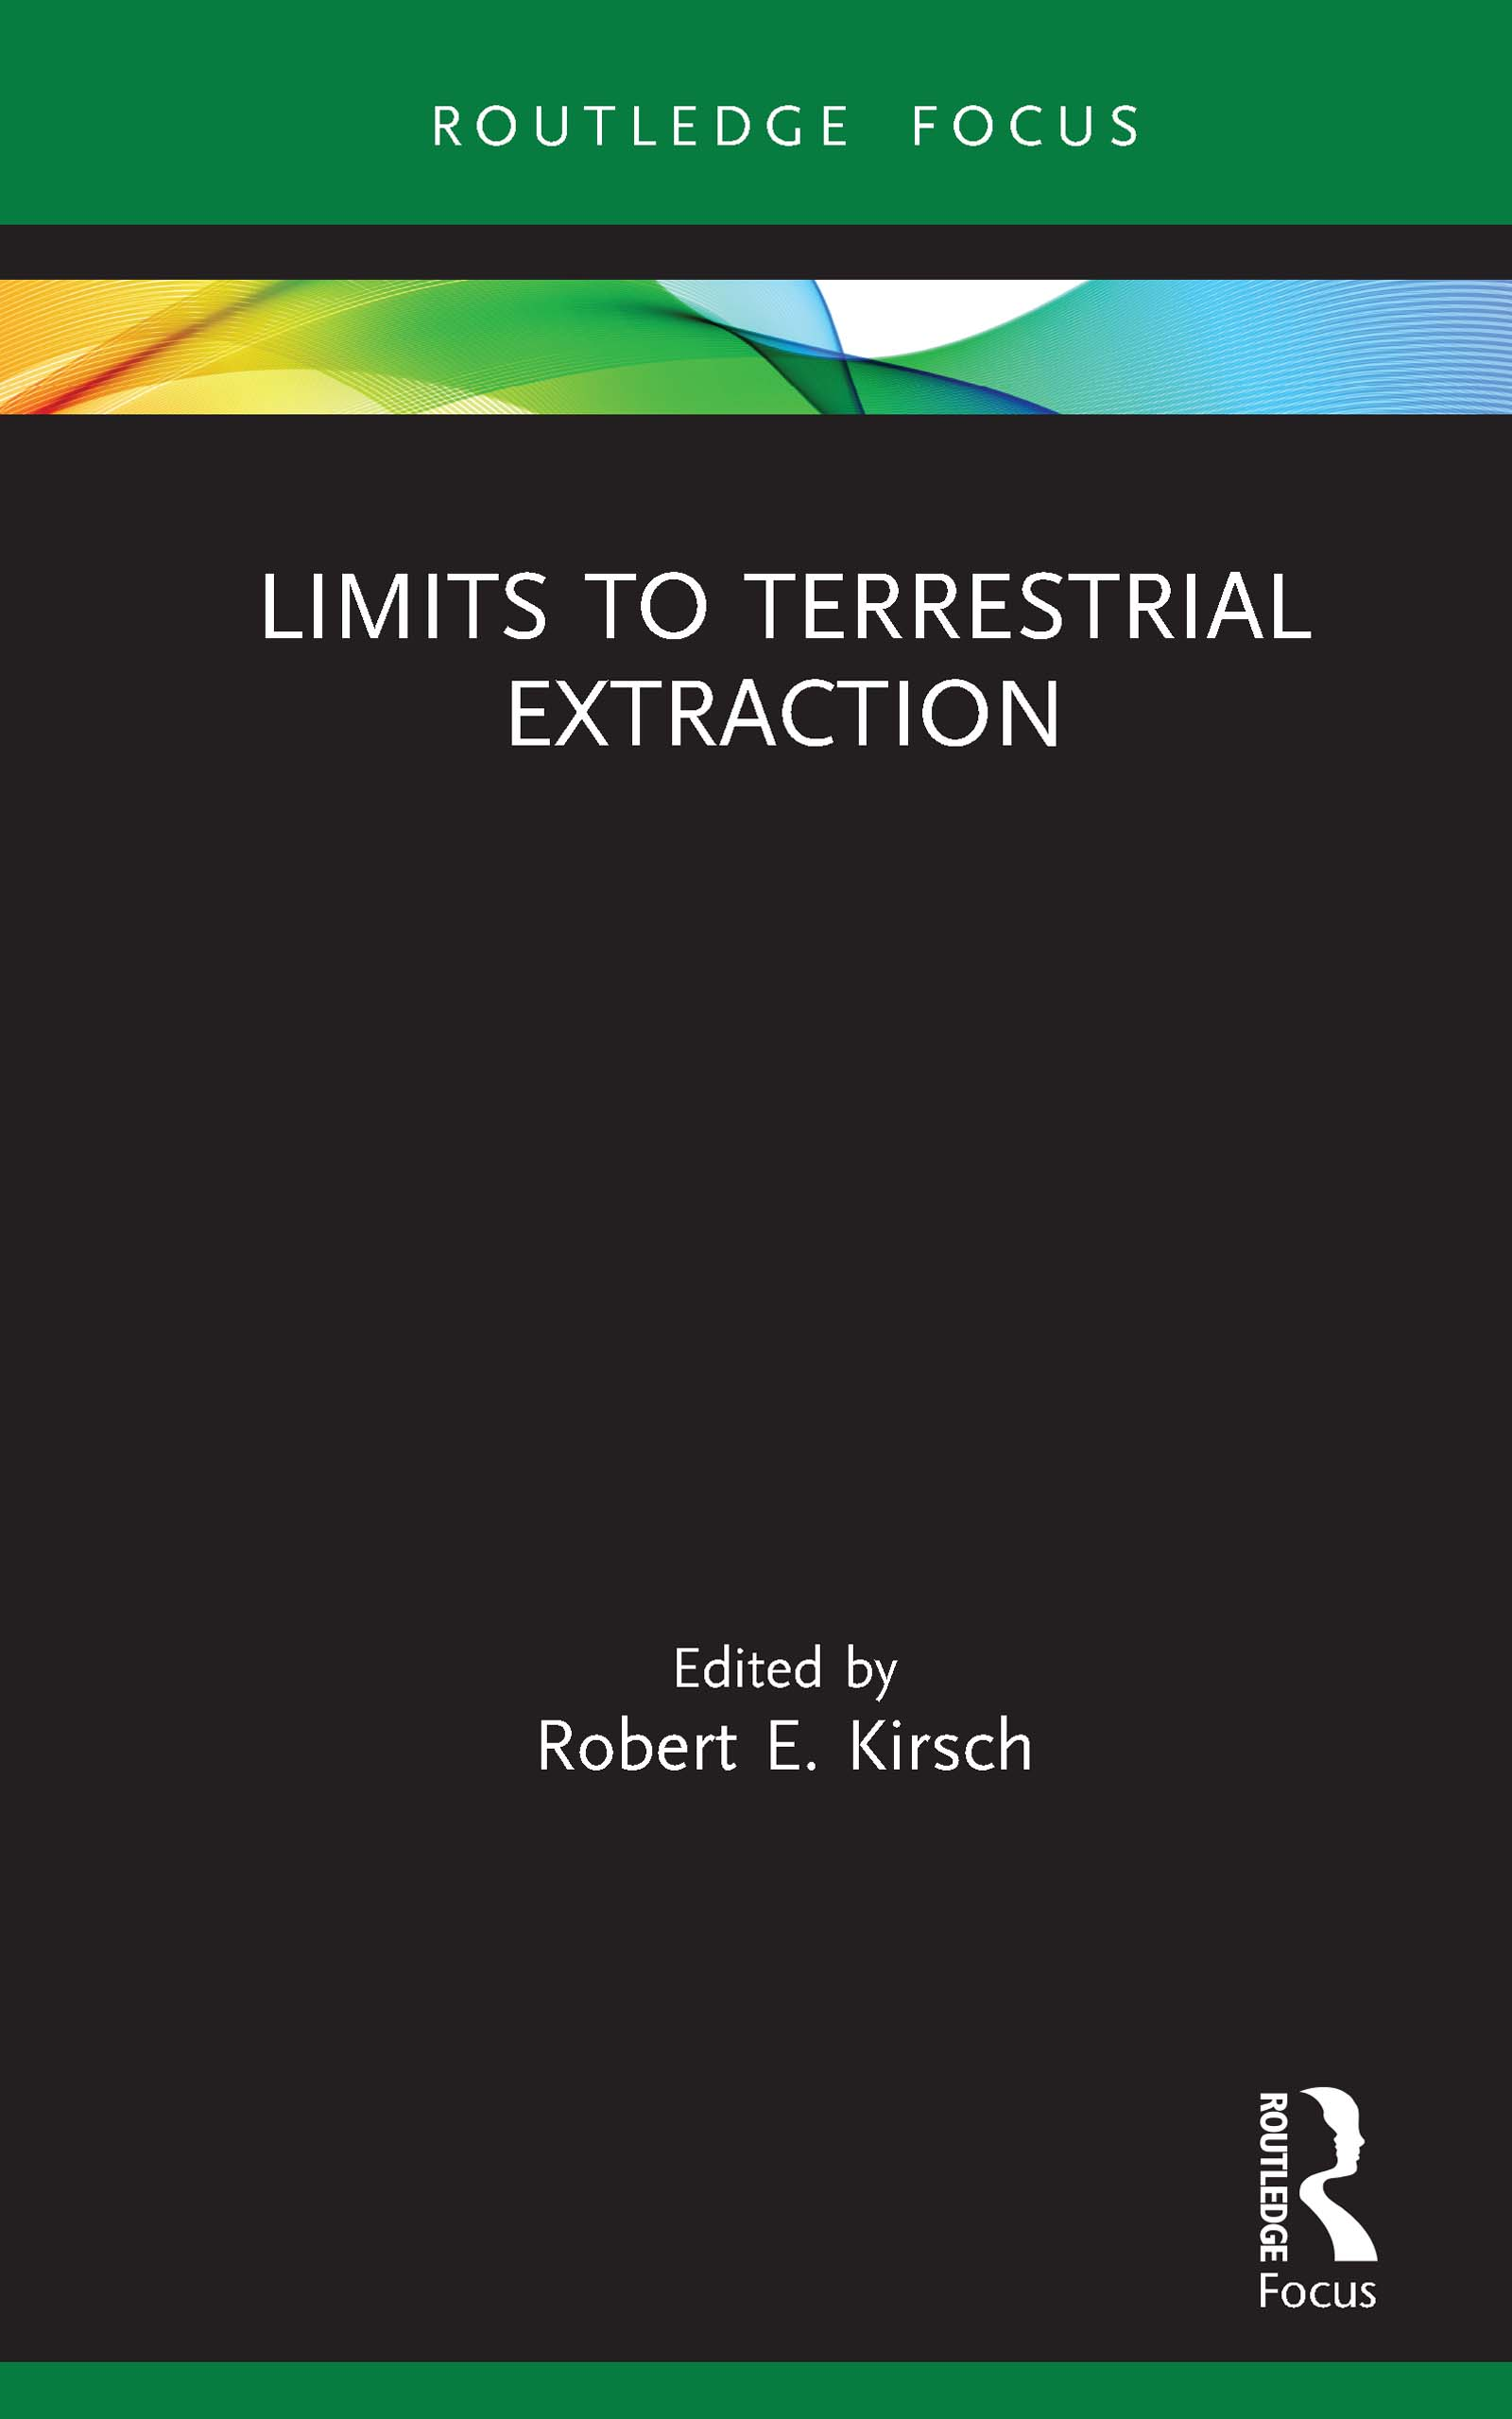 Limits to Terrestrial Extraction book cover